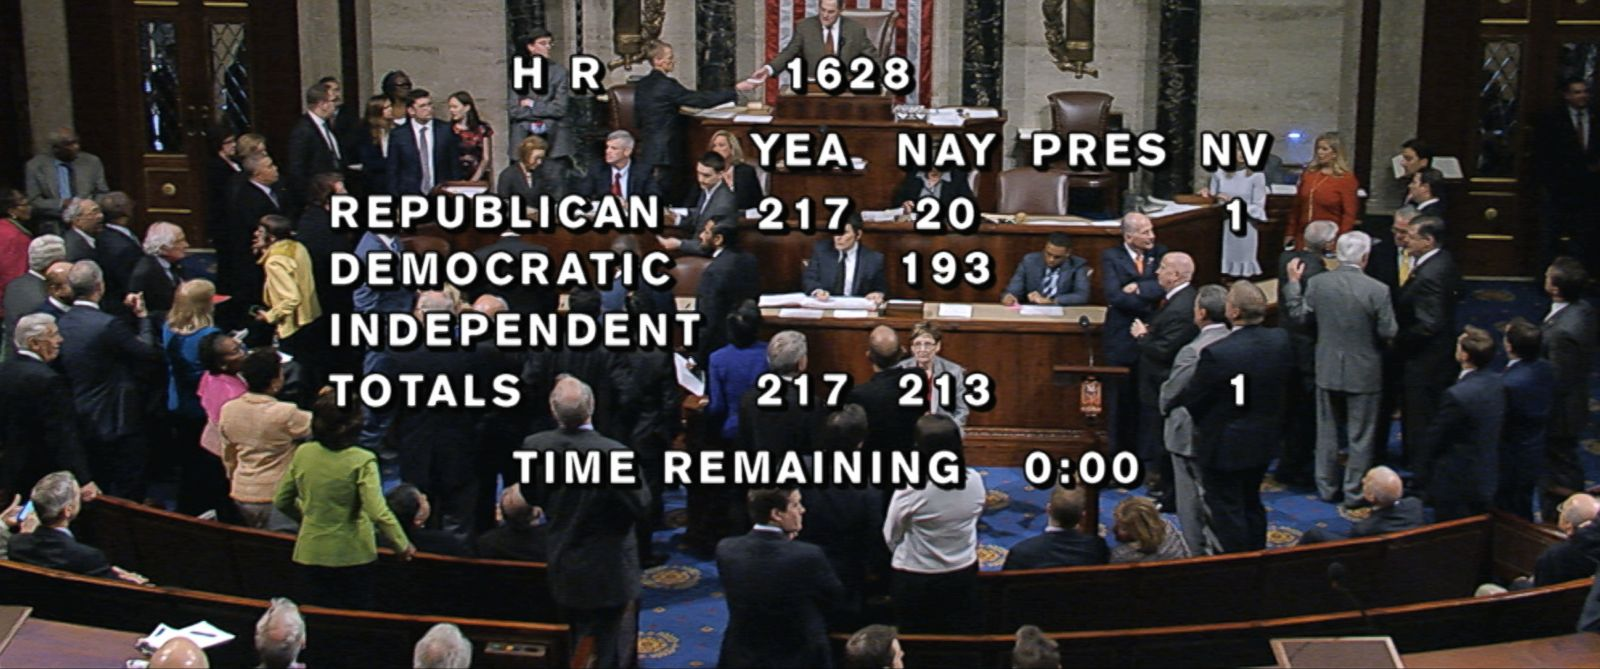 PHOTO: In this image provided by House Television, the final total on the vote on the Republicans health care bill is displayed at the Capitol in Washington on Thursday, May 4, 2017.